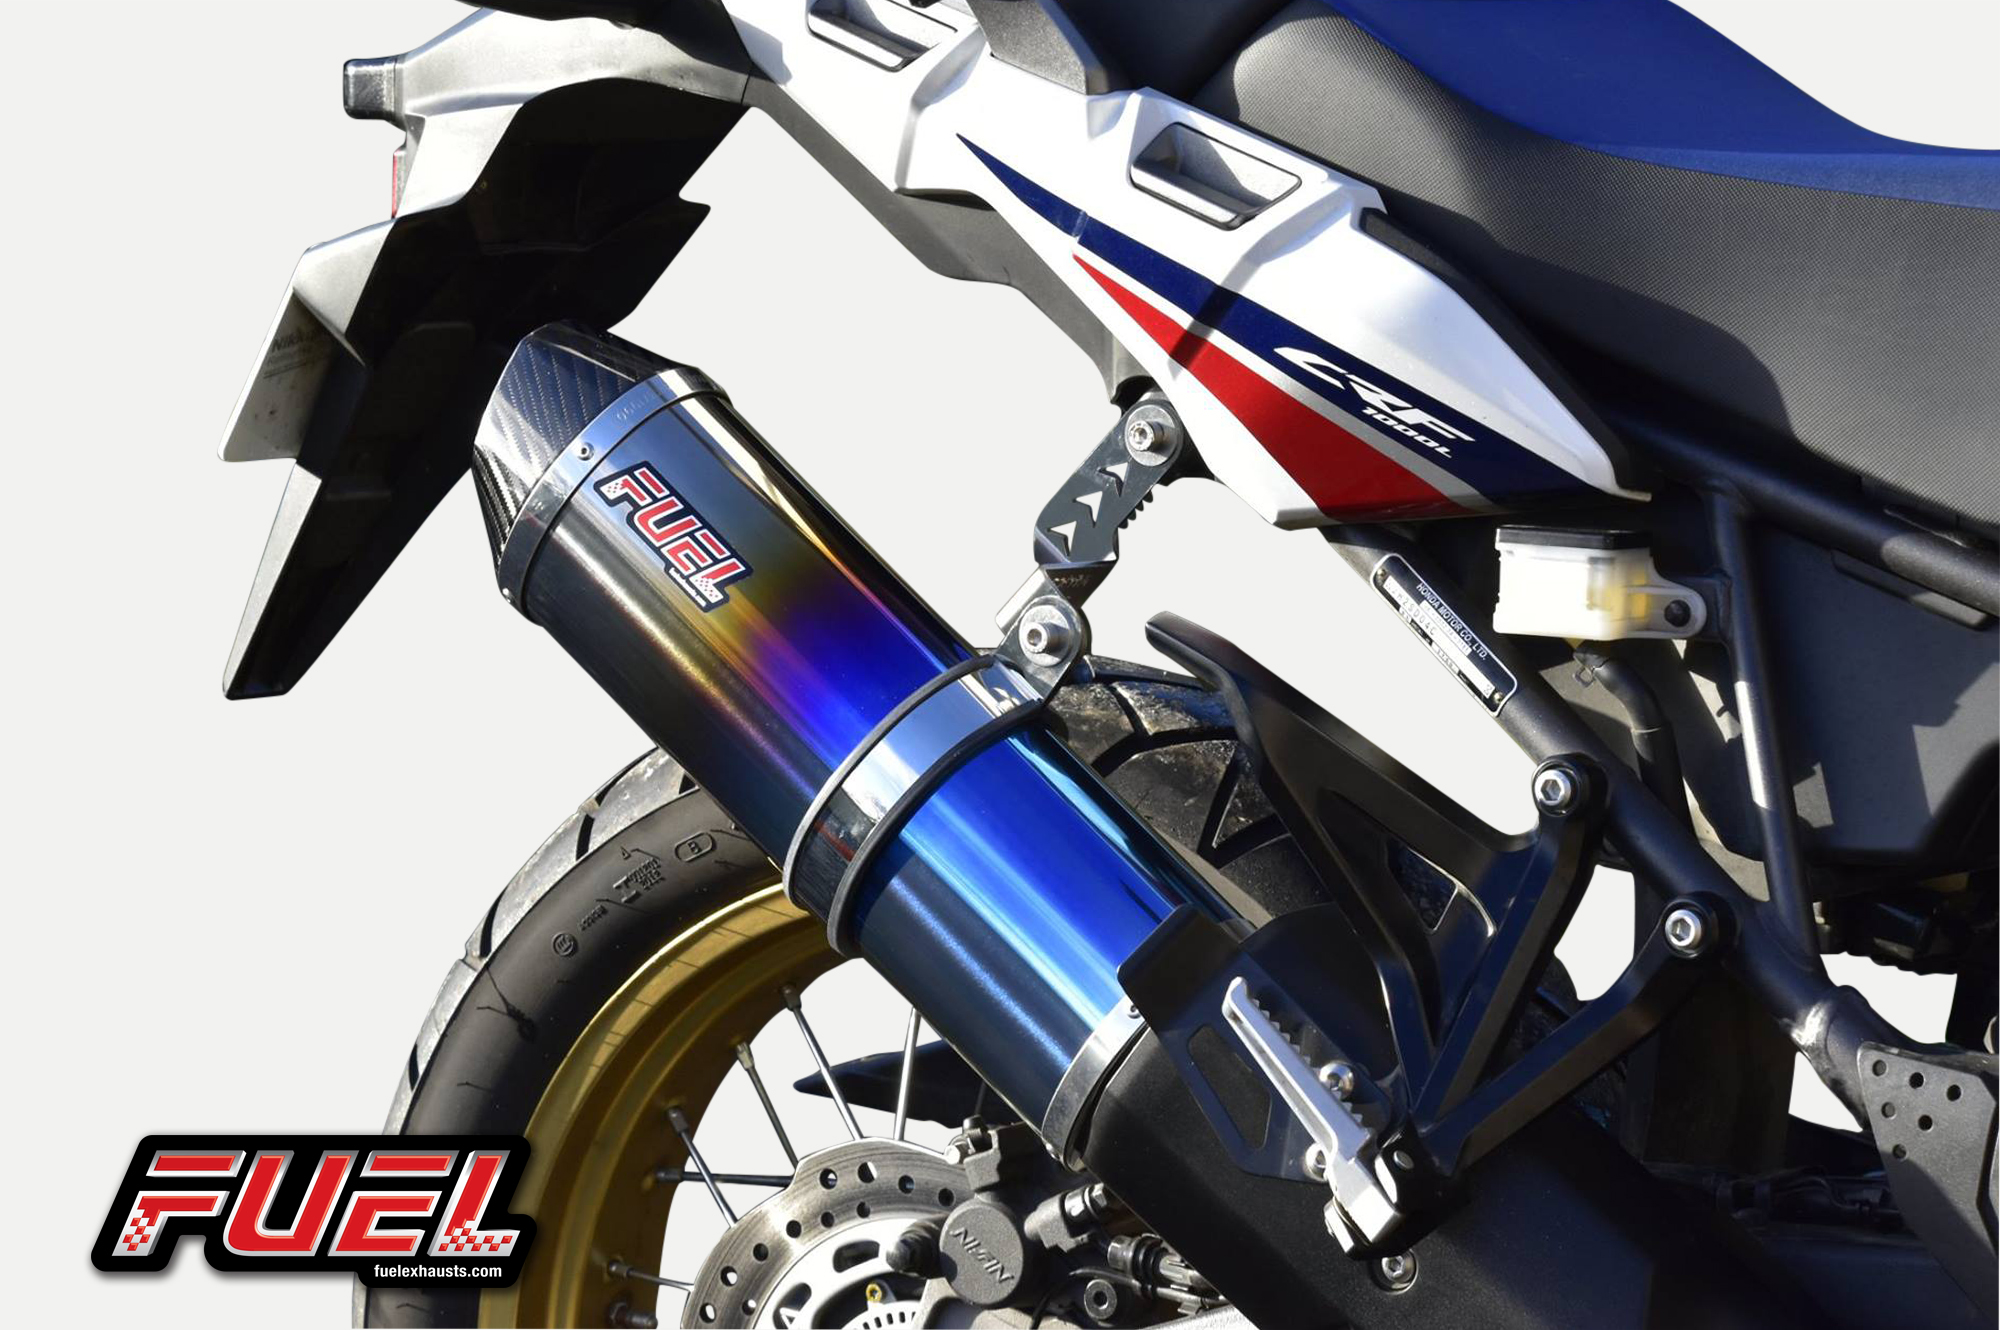 Fuel Exhausts Available For The Honda Africa Twin Crf1000l